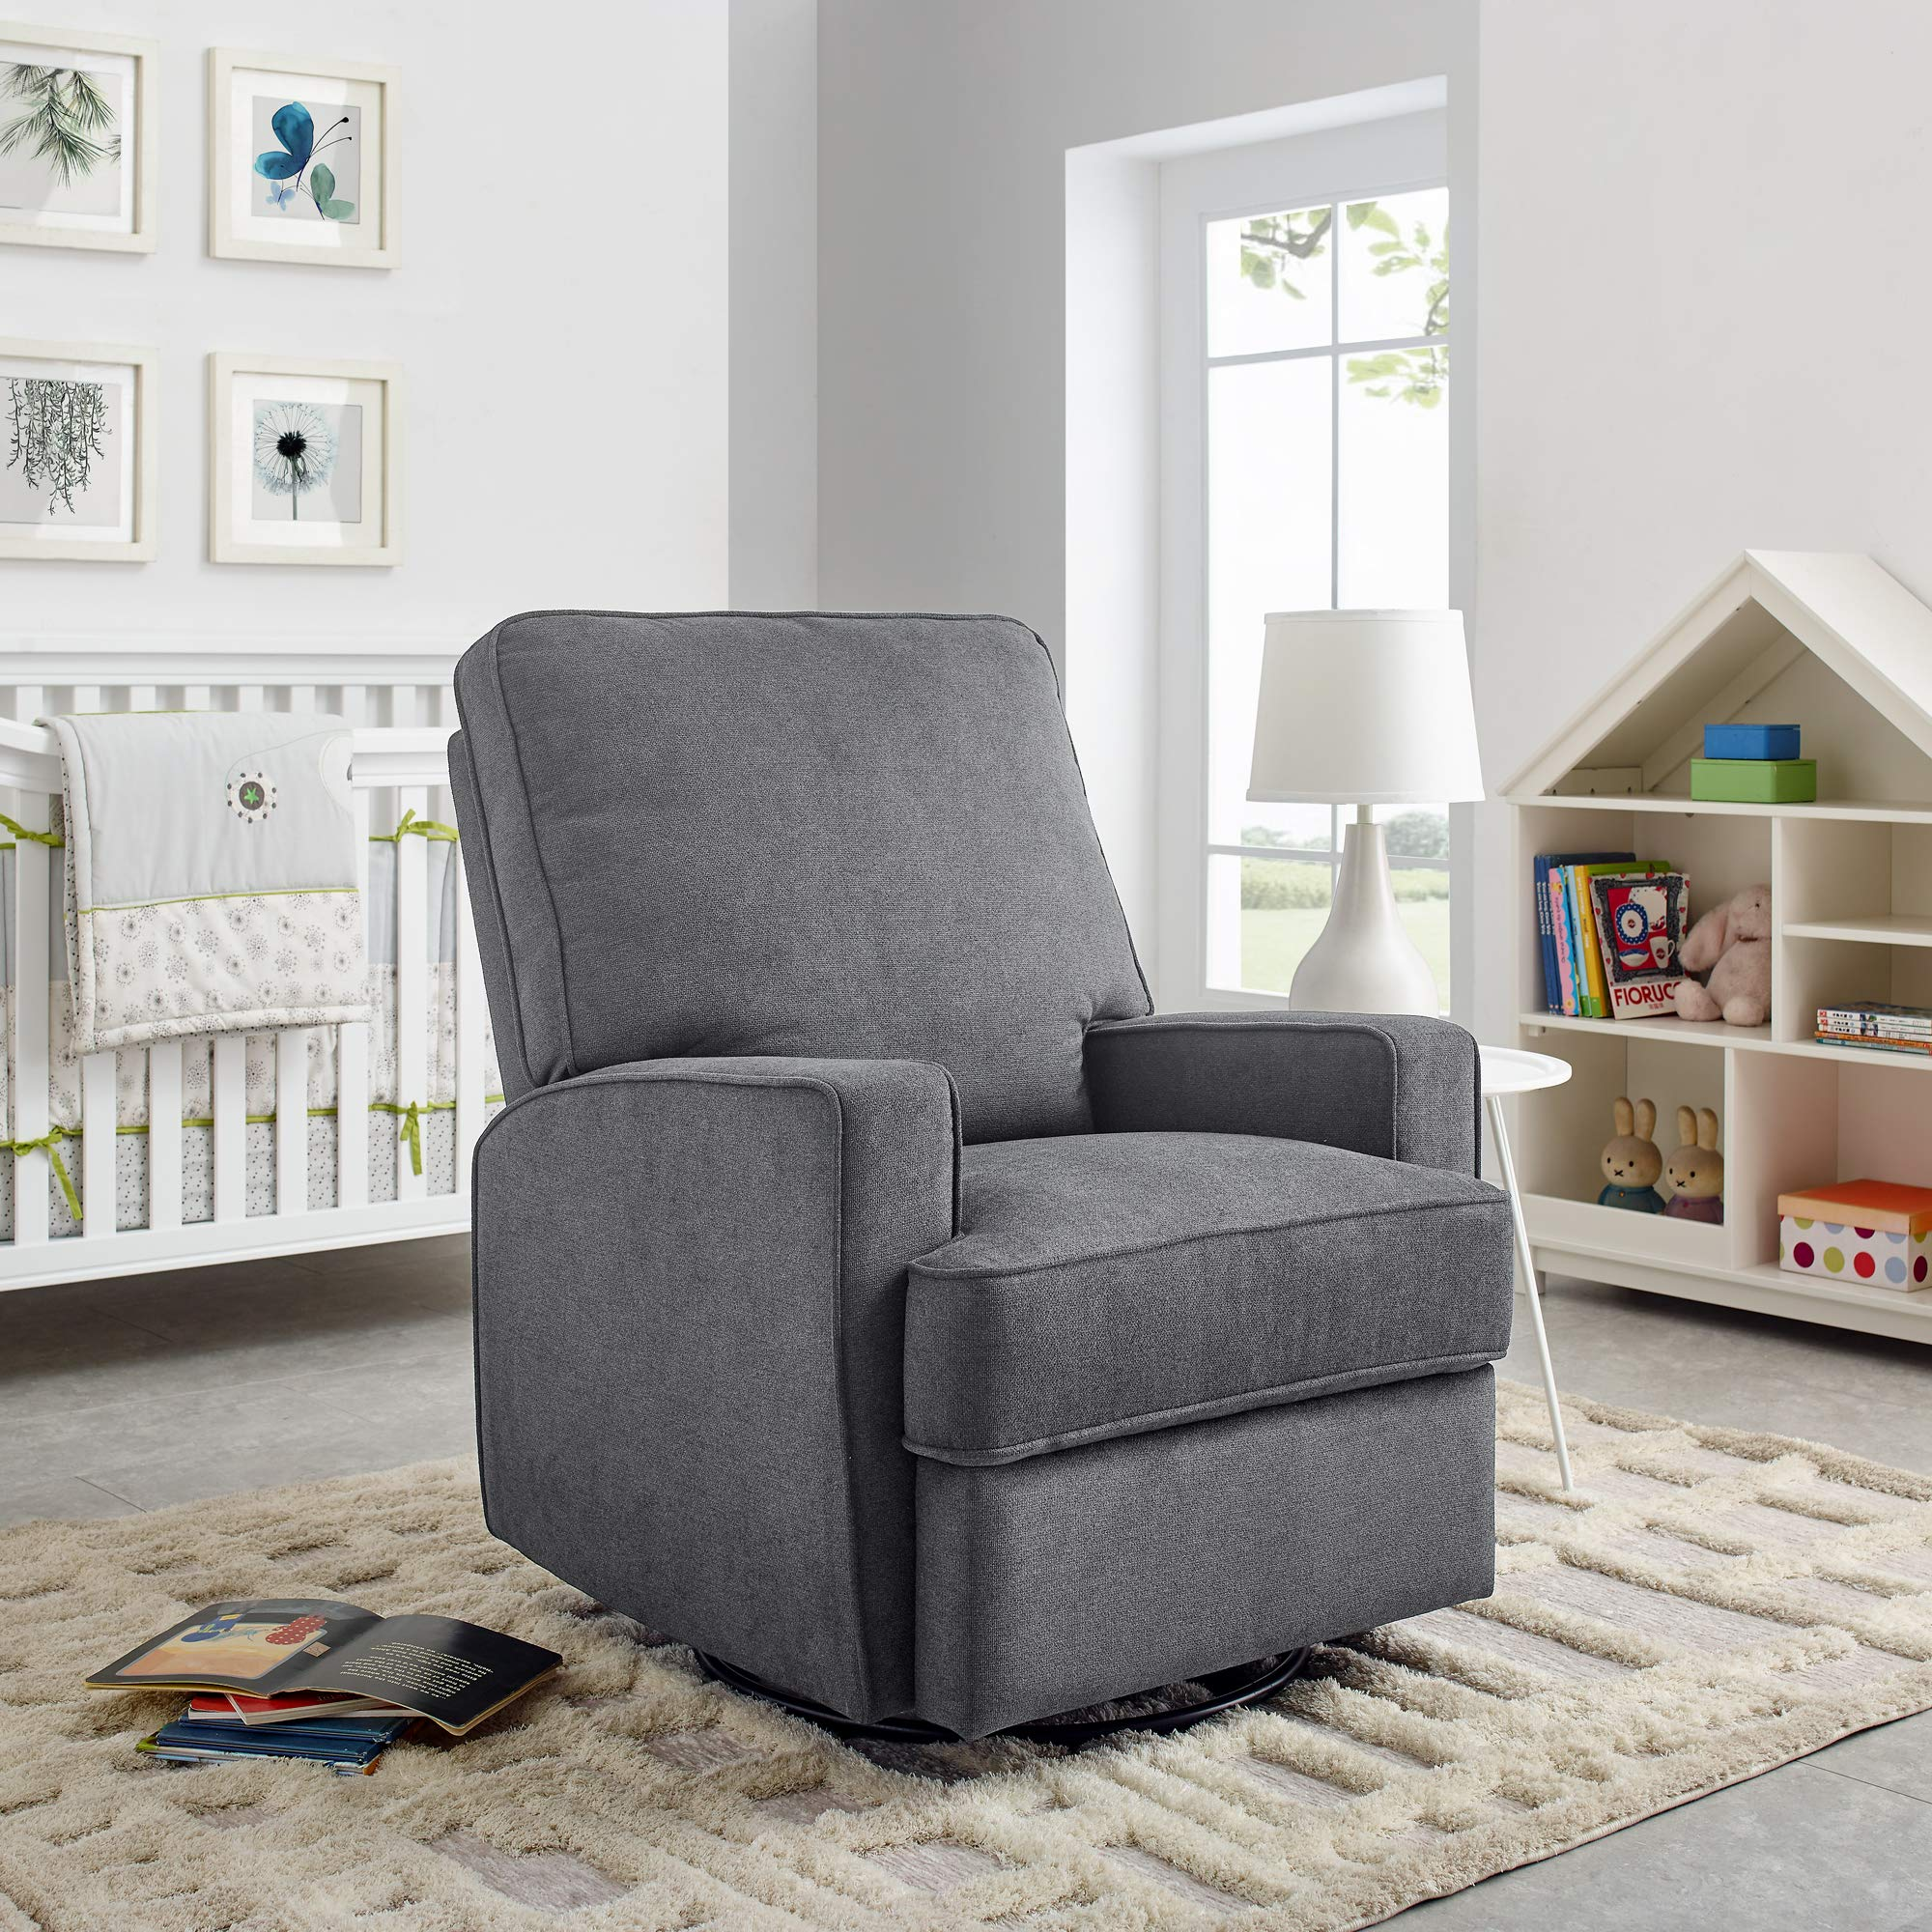 Classic Brands New Town Upholstered Glider Swivel Rocker Chair, Grey by Classic Brands